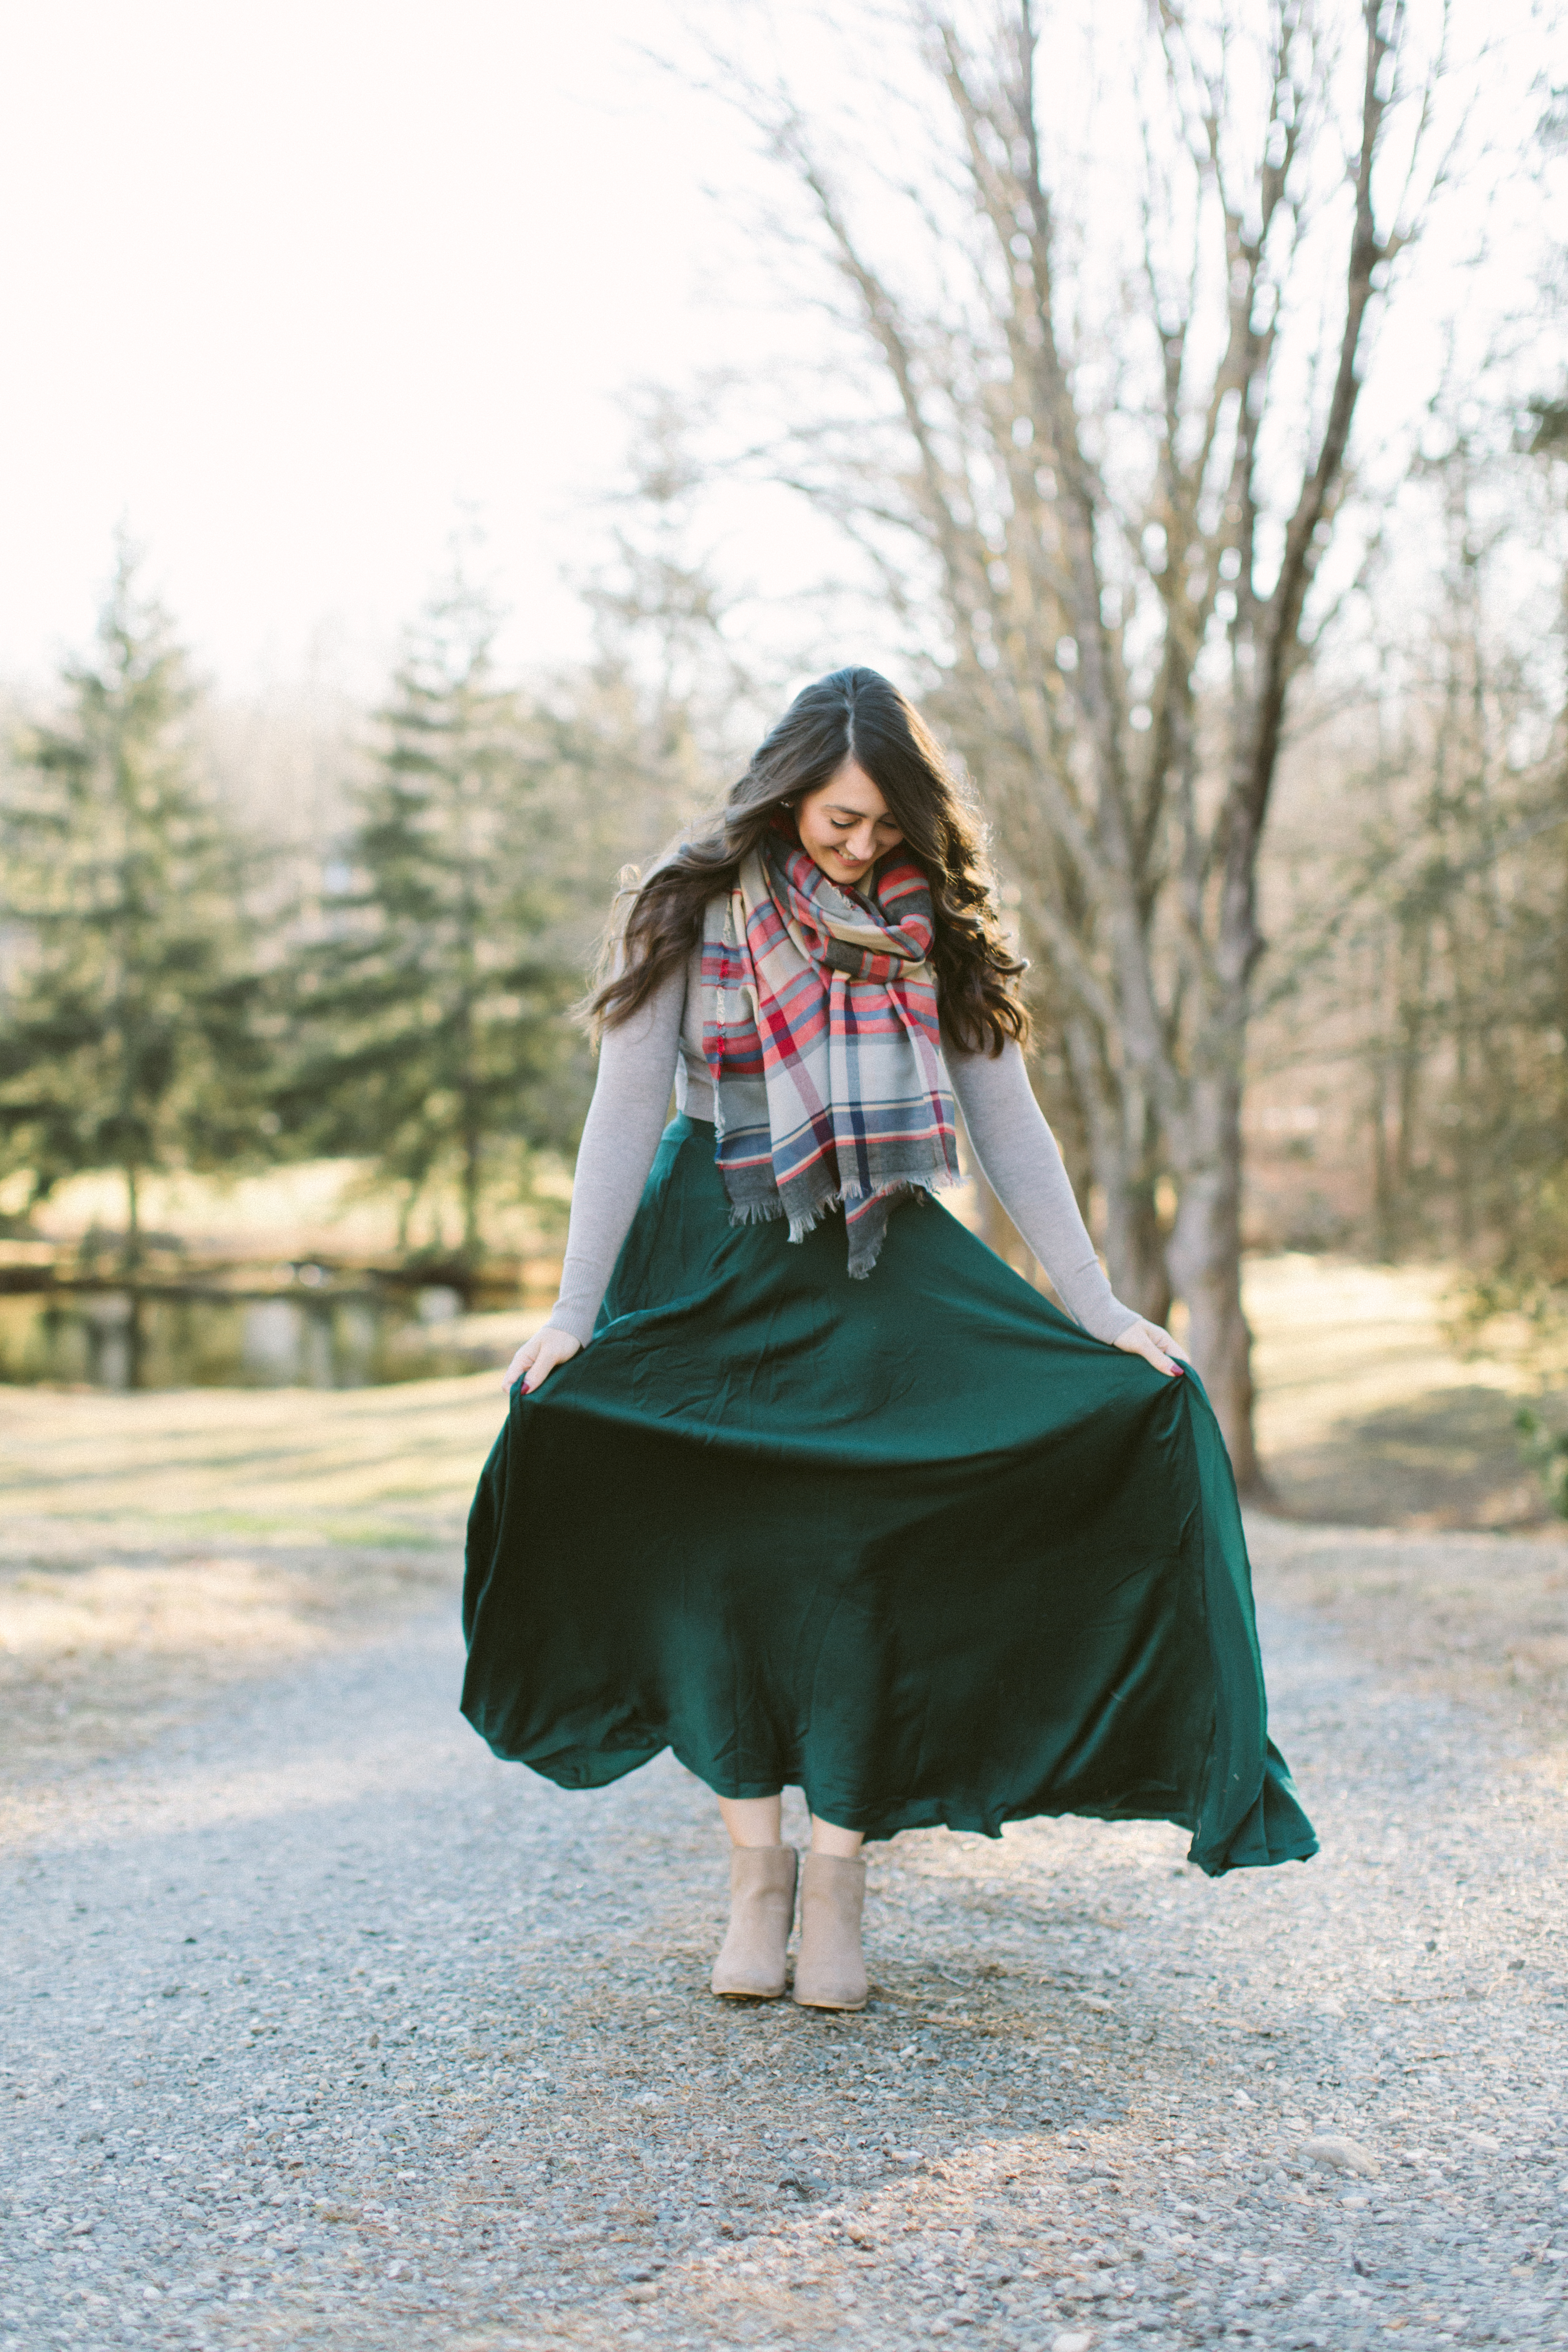 Are you looking for the perfect skirt for this winter? Well look no further becuase this skirt from Morning Lavender is to die for! Come and see why!